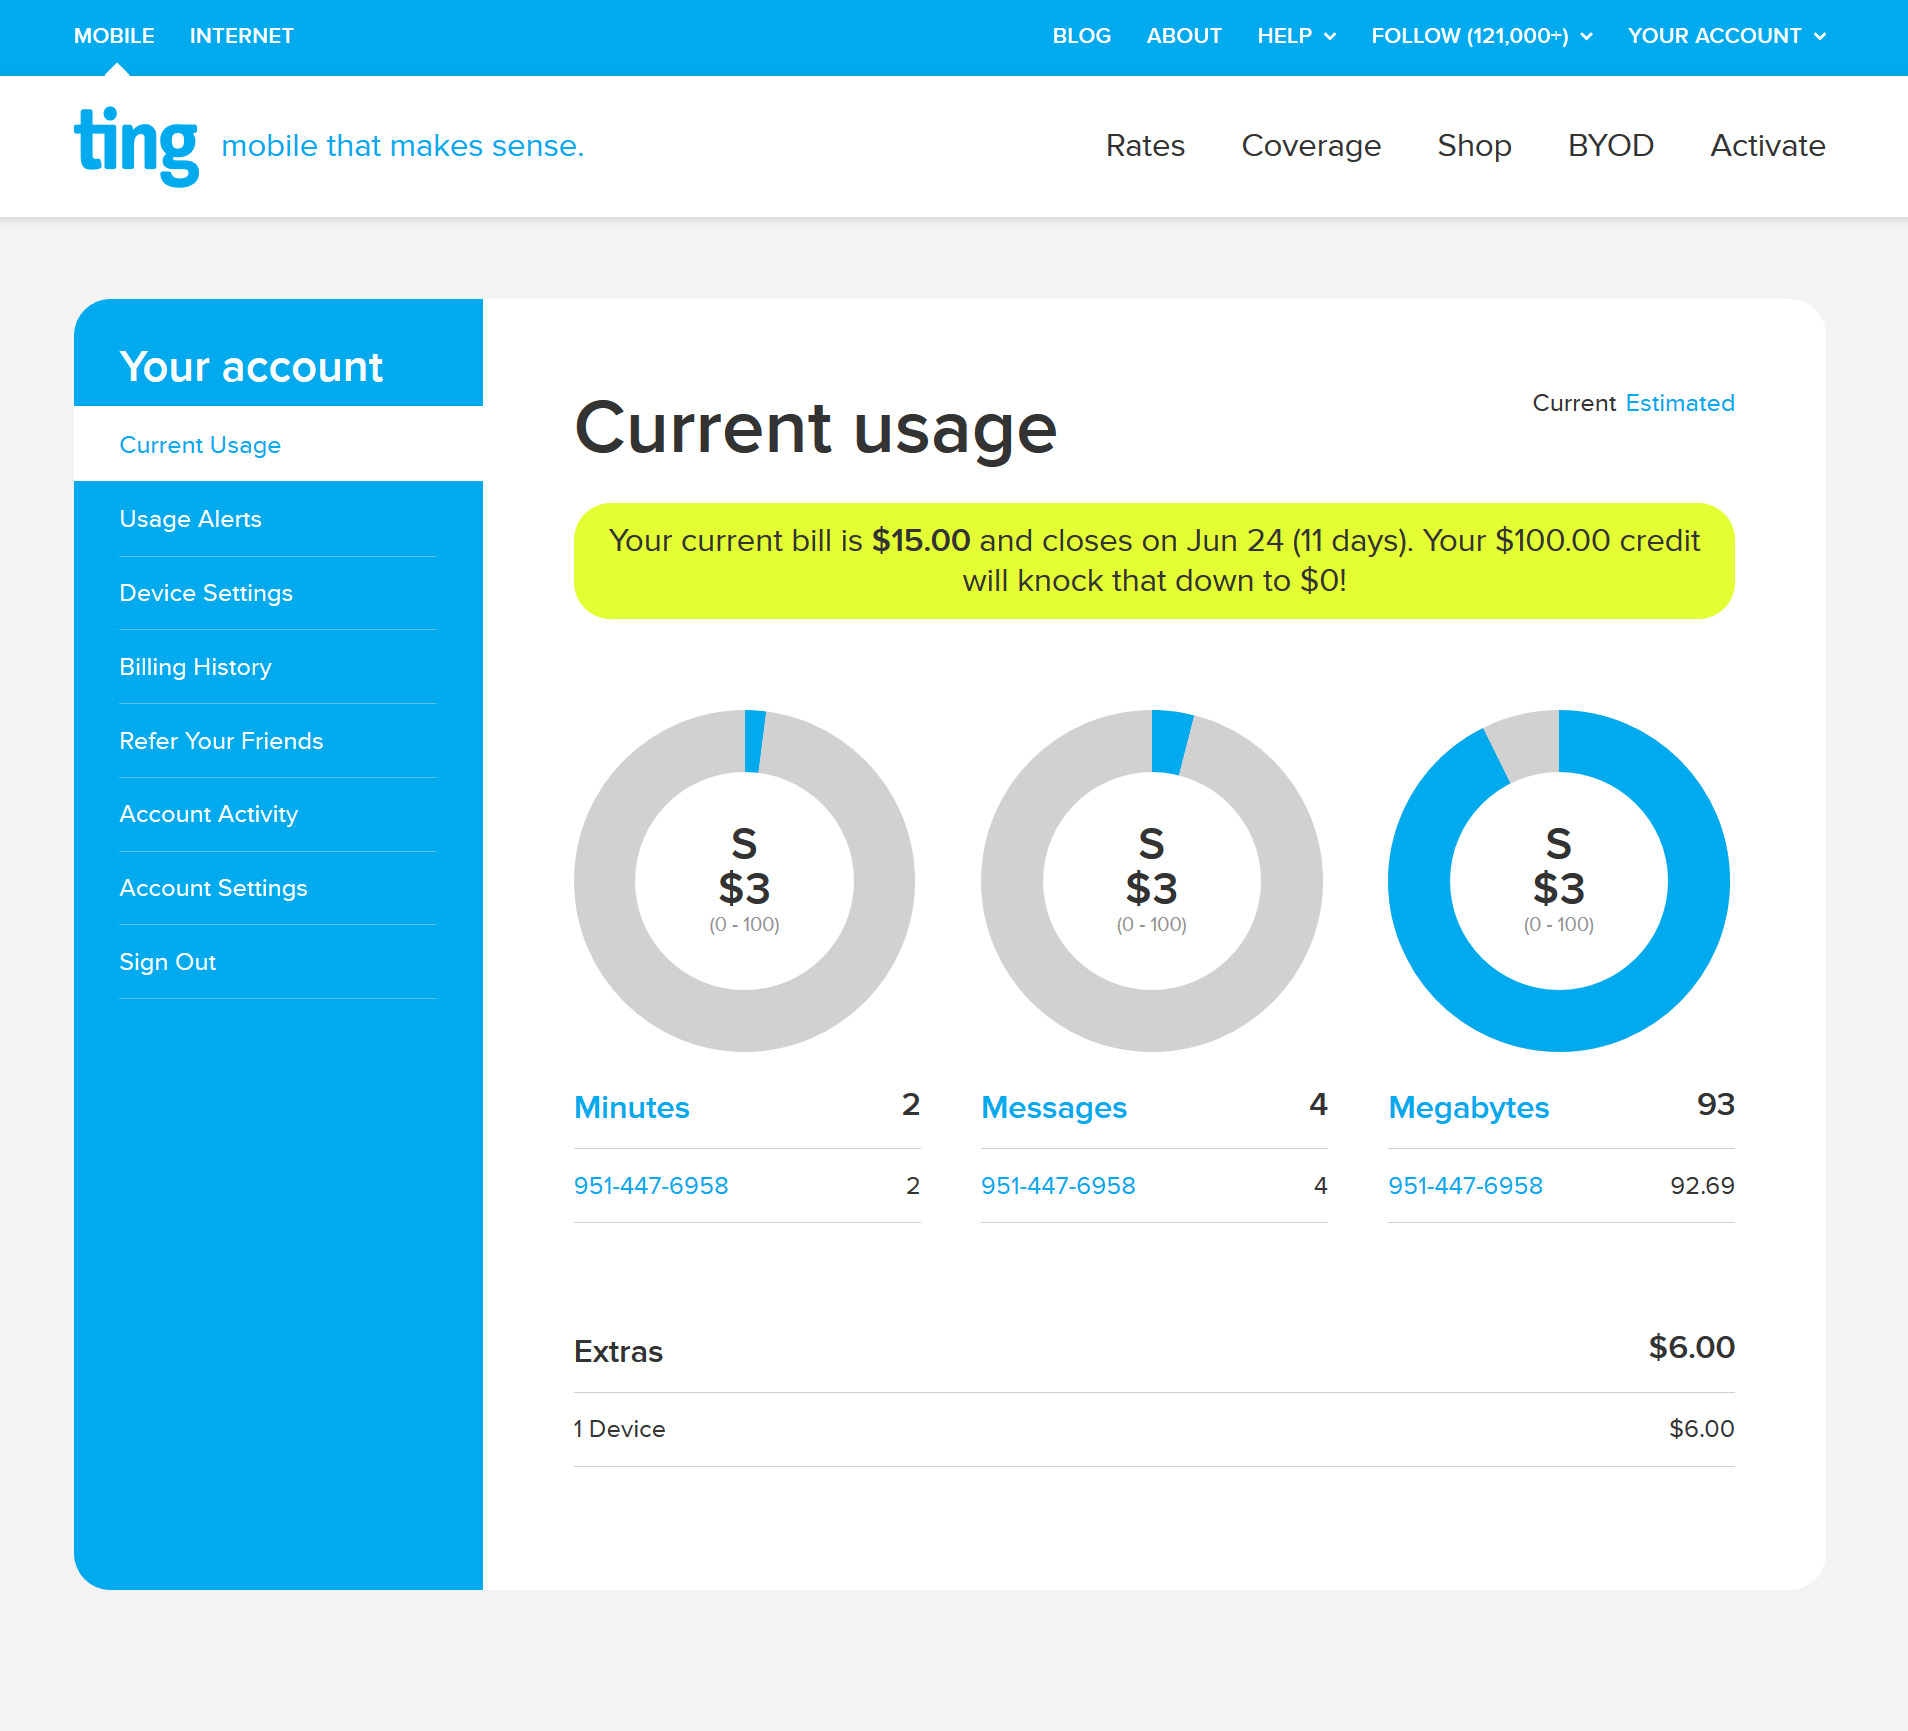 ting mobile online usage